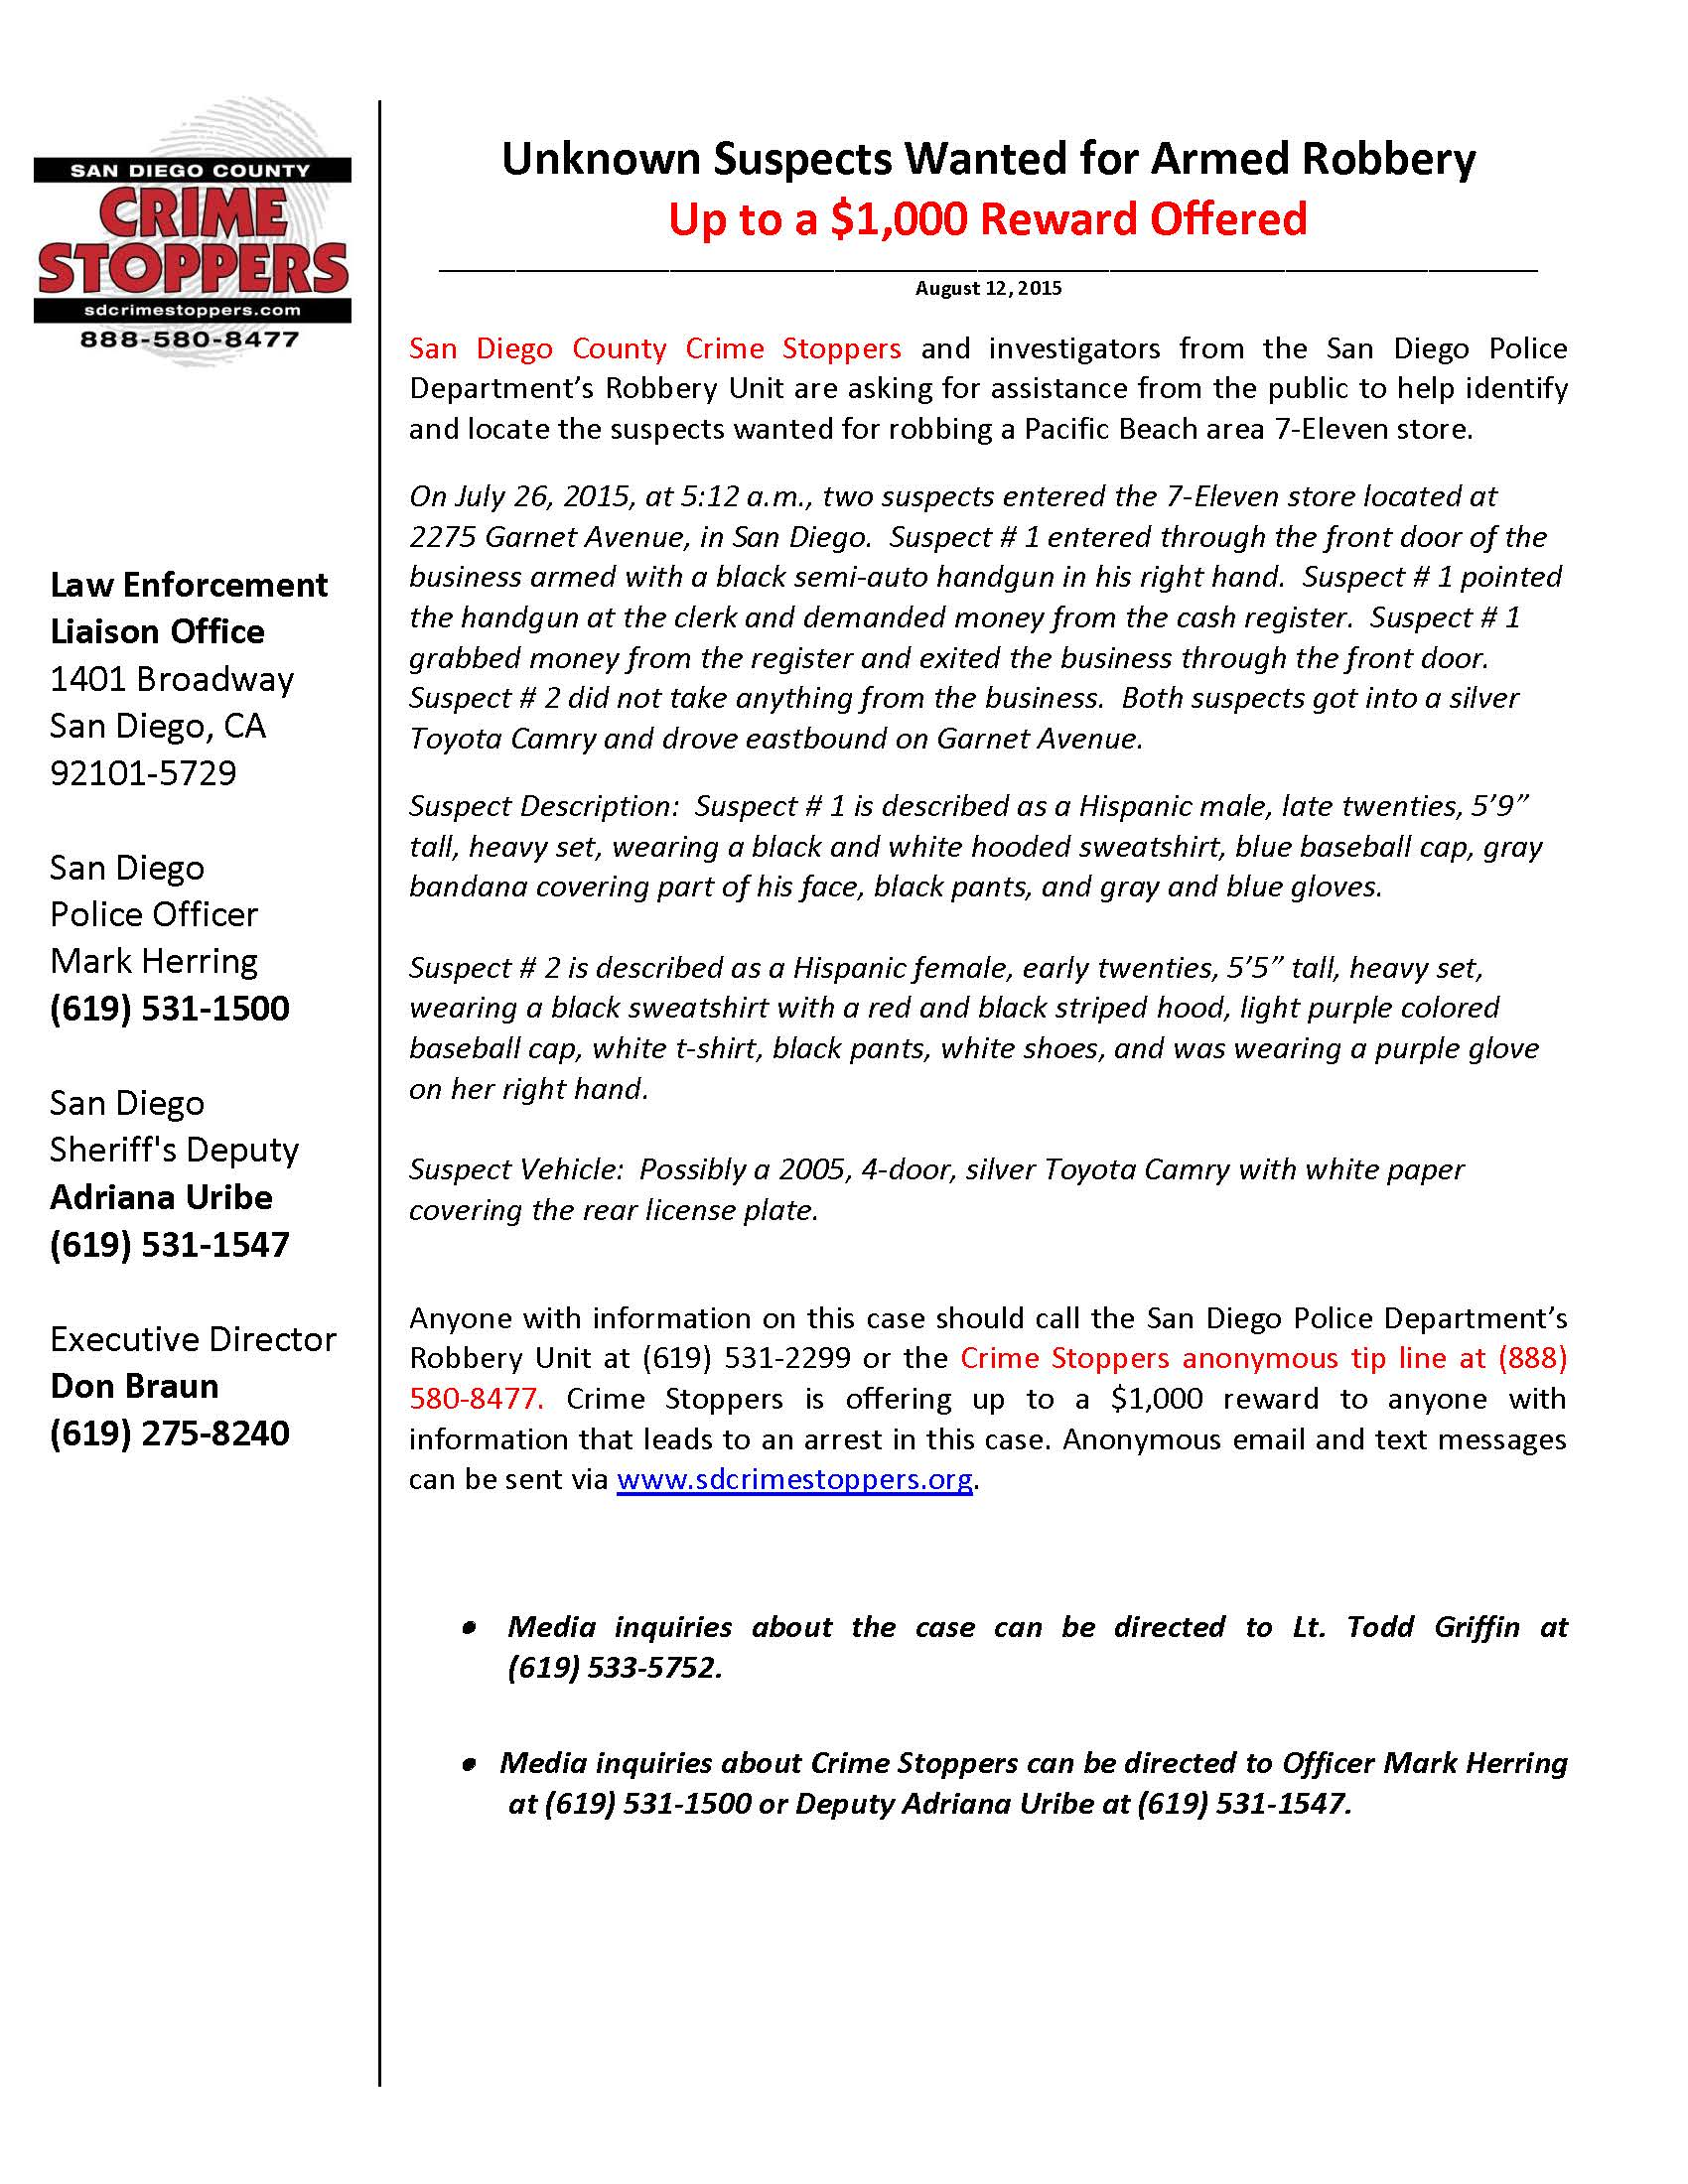 081215 Pacific Beach 7-Eleven Robbery_Page_1